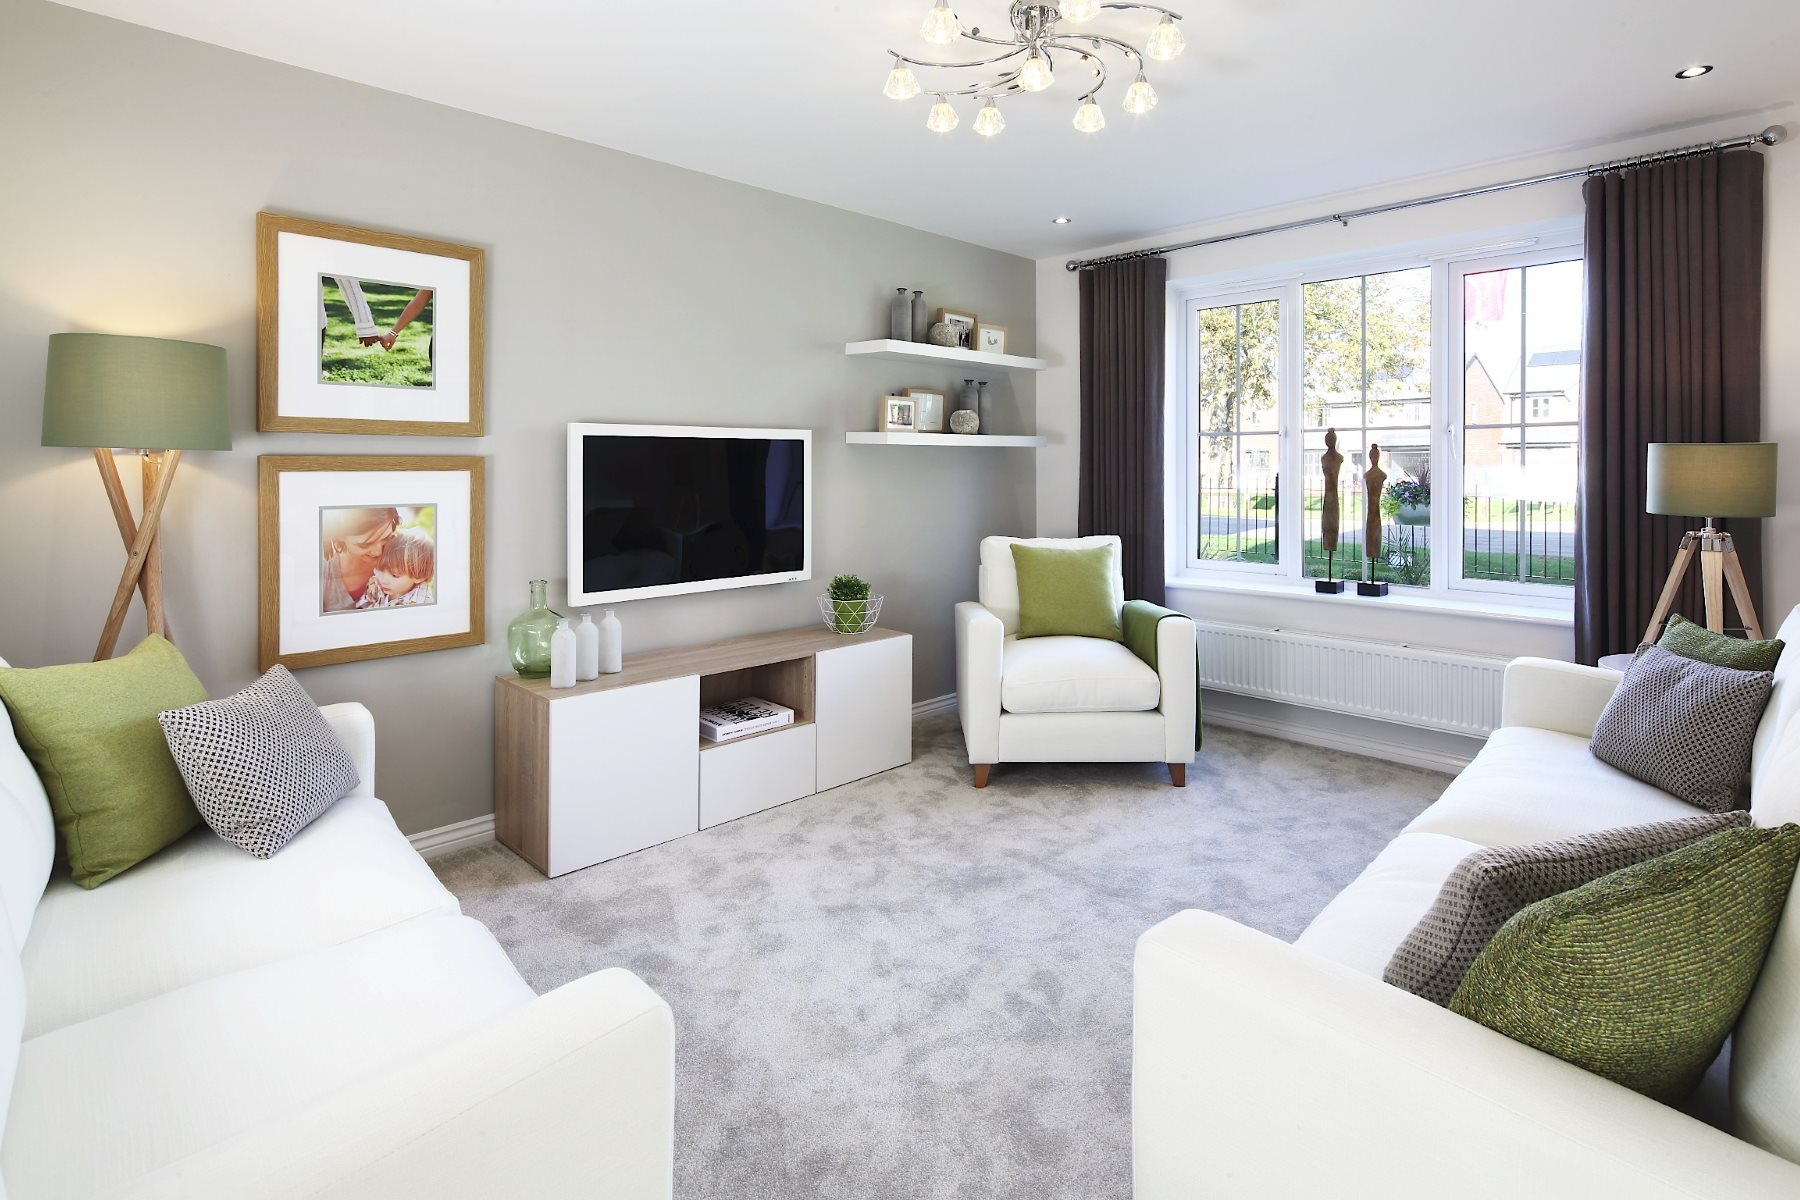 Scholars field taylor wimpey for Show home living room ideas